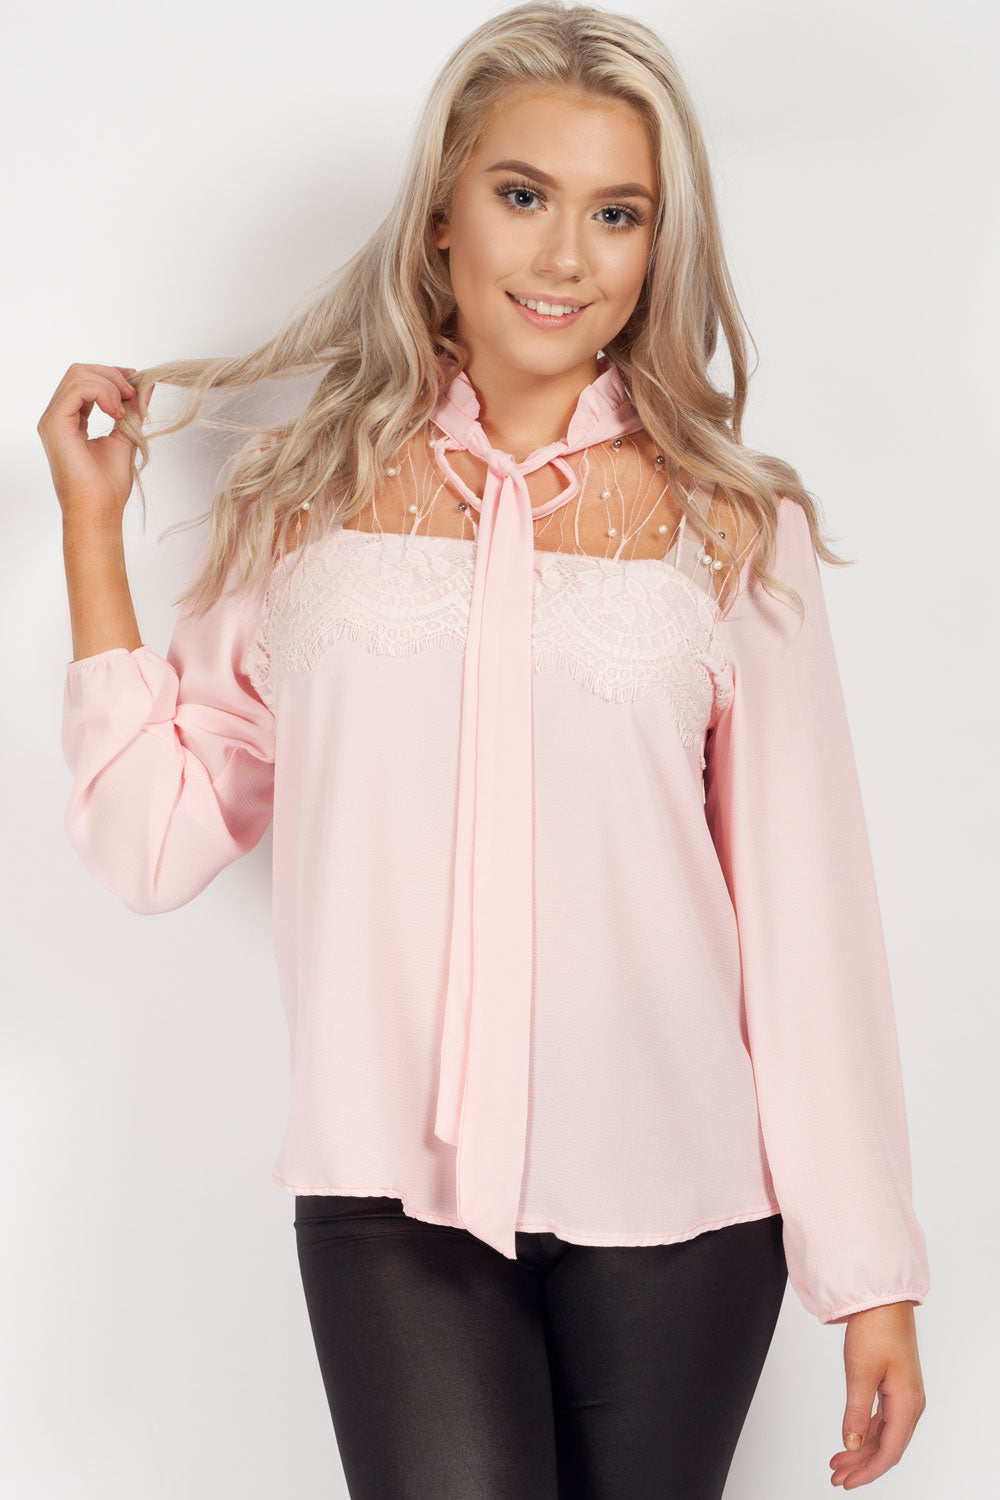 406901b3caacc7 Pink Long Sleeve Blouse Diamante Detail